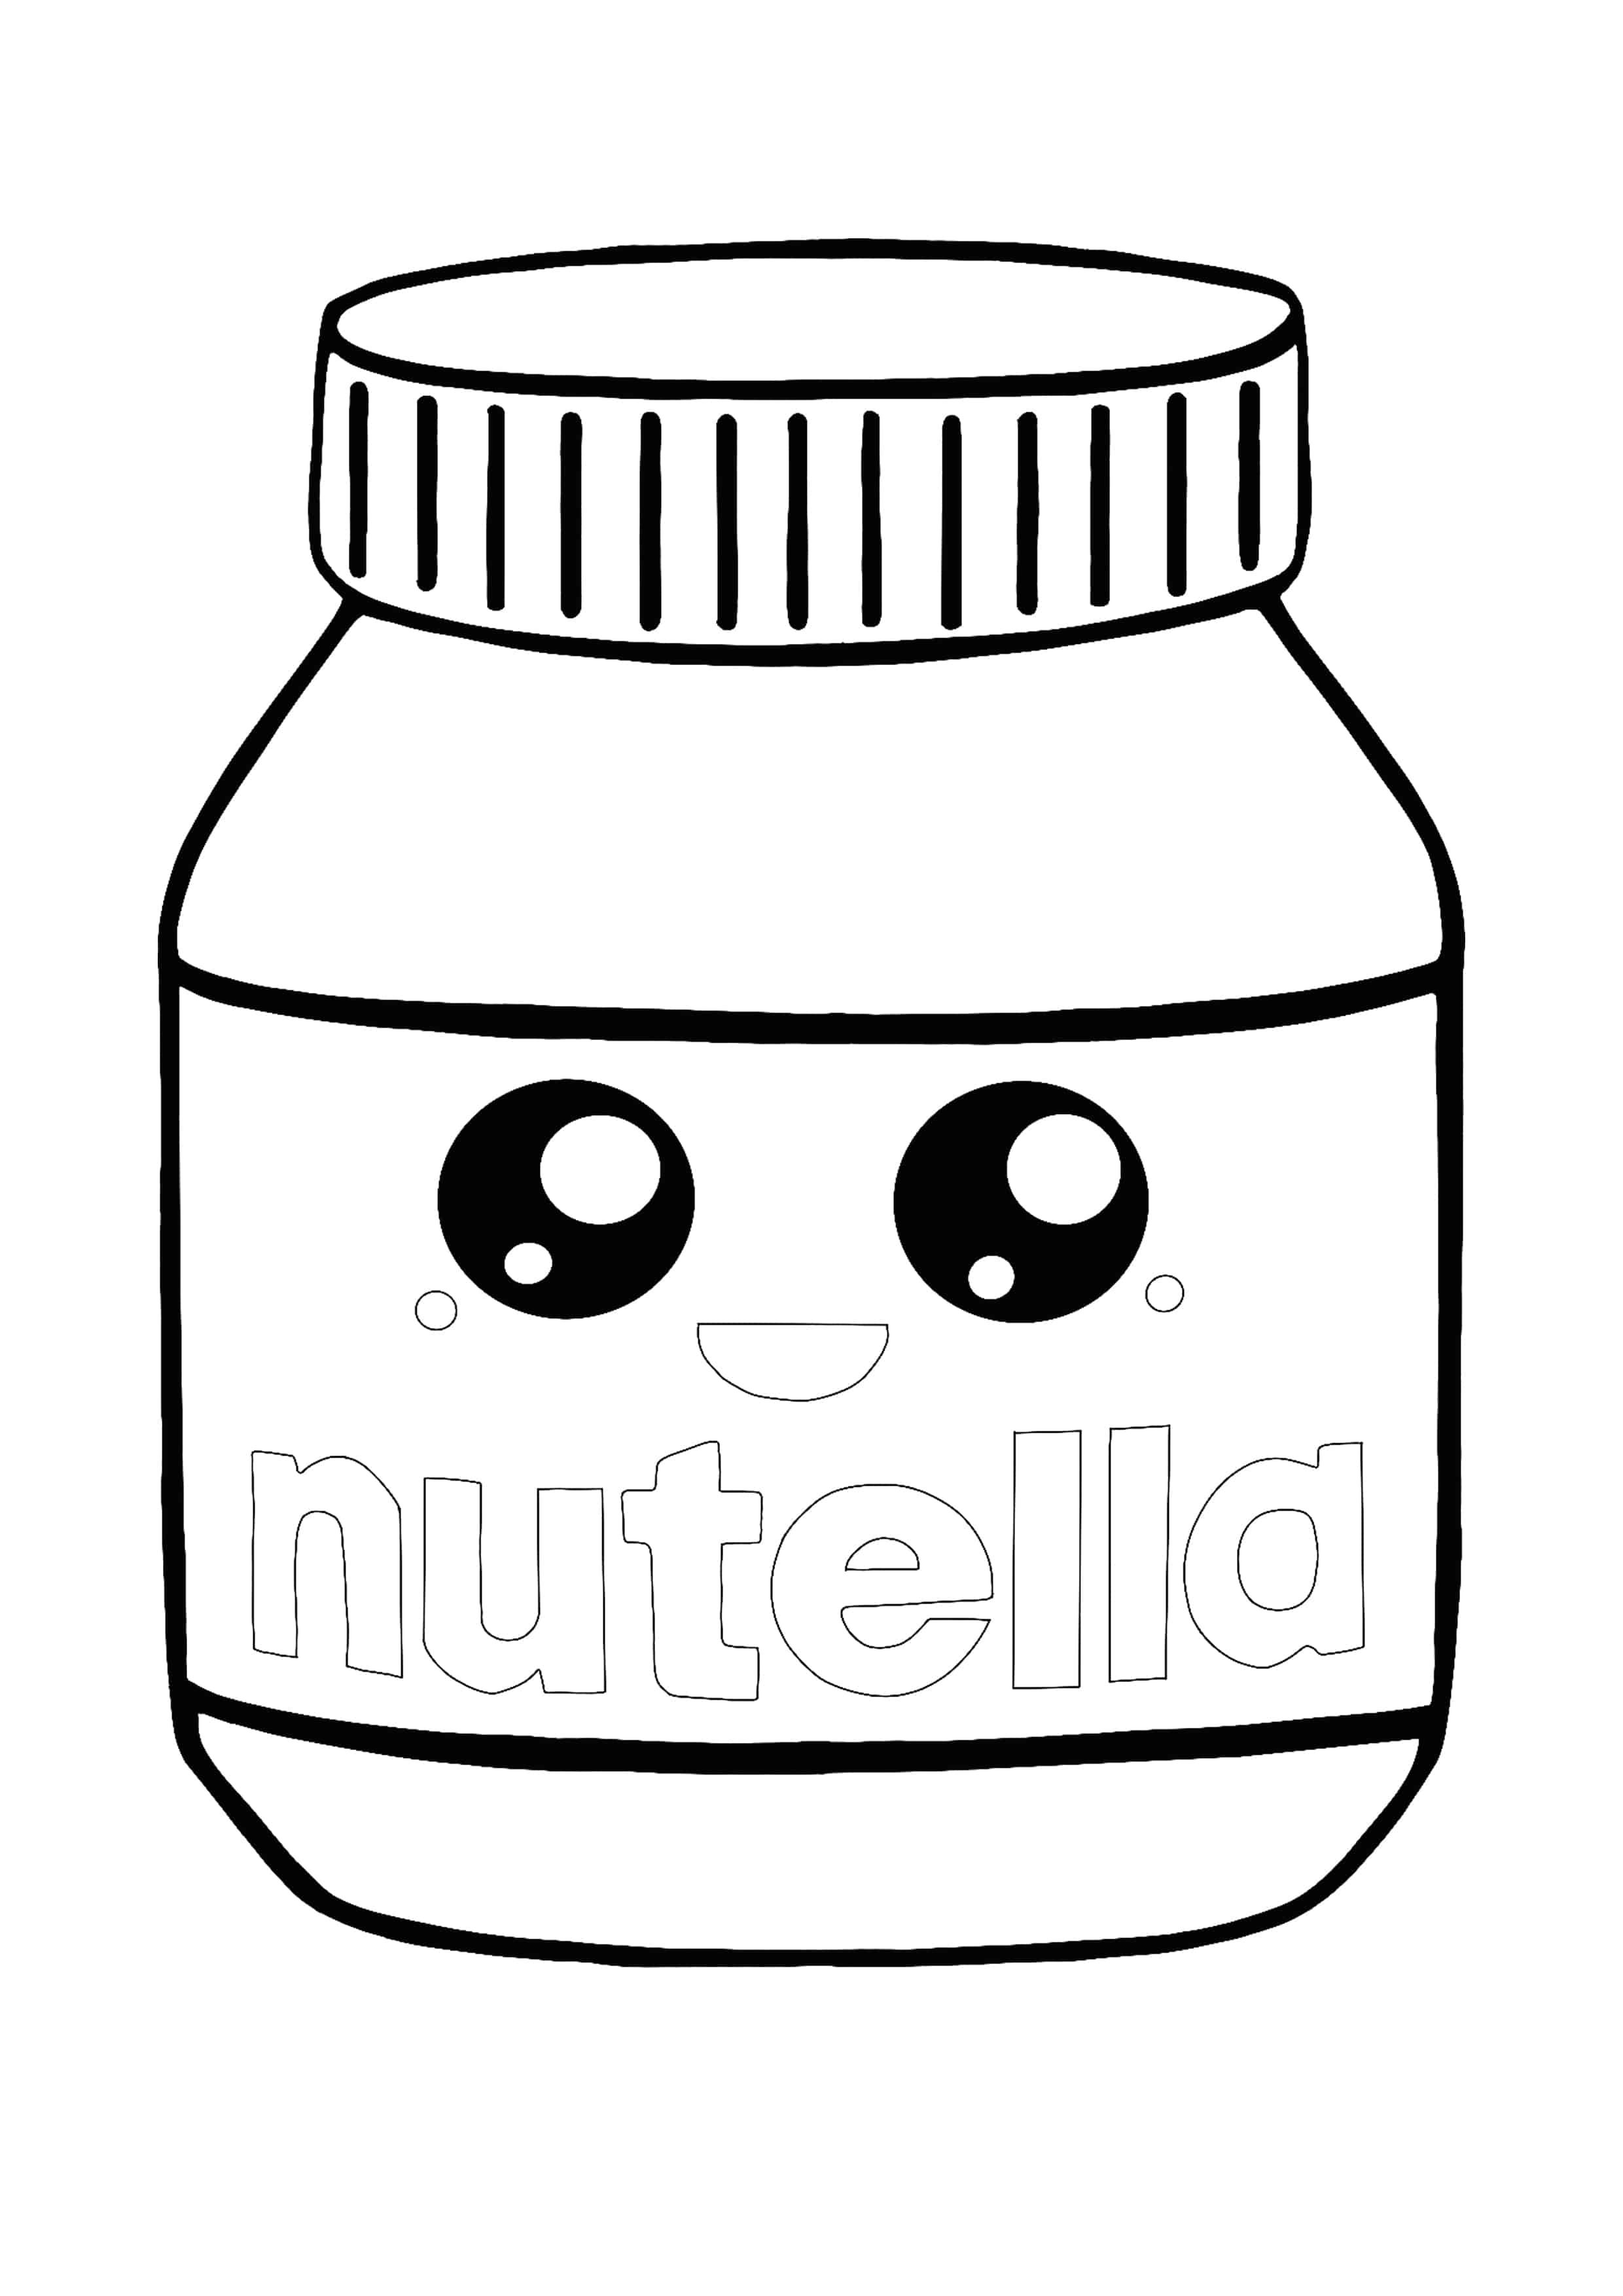 Kawaii Nutella Coloring Page Coloring Pages Cute Coloring Pages Free Printable Coloring Pages